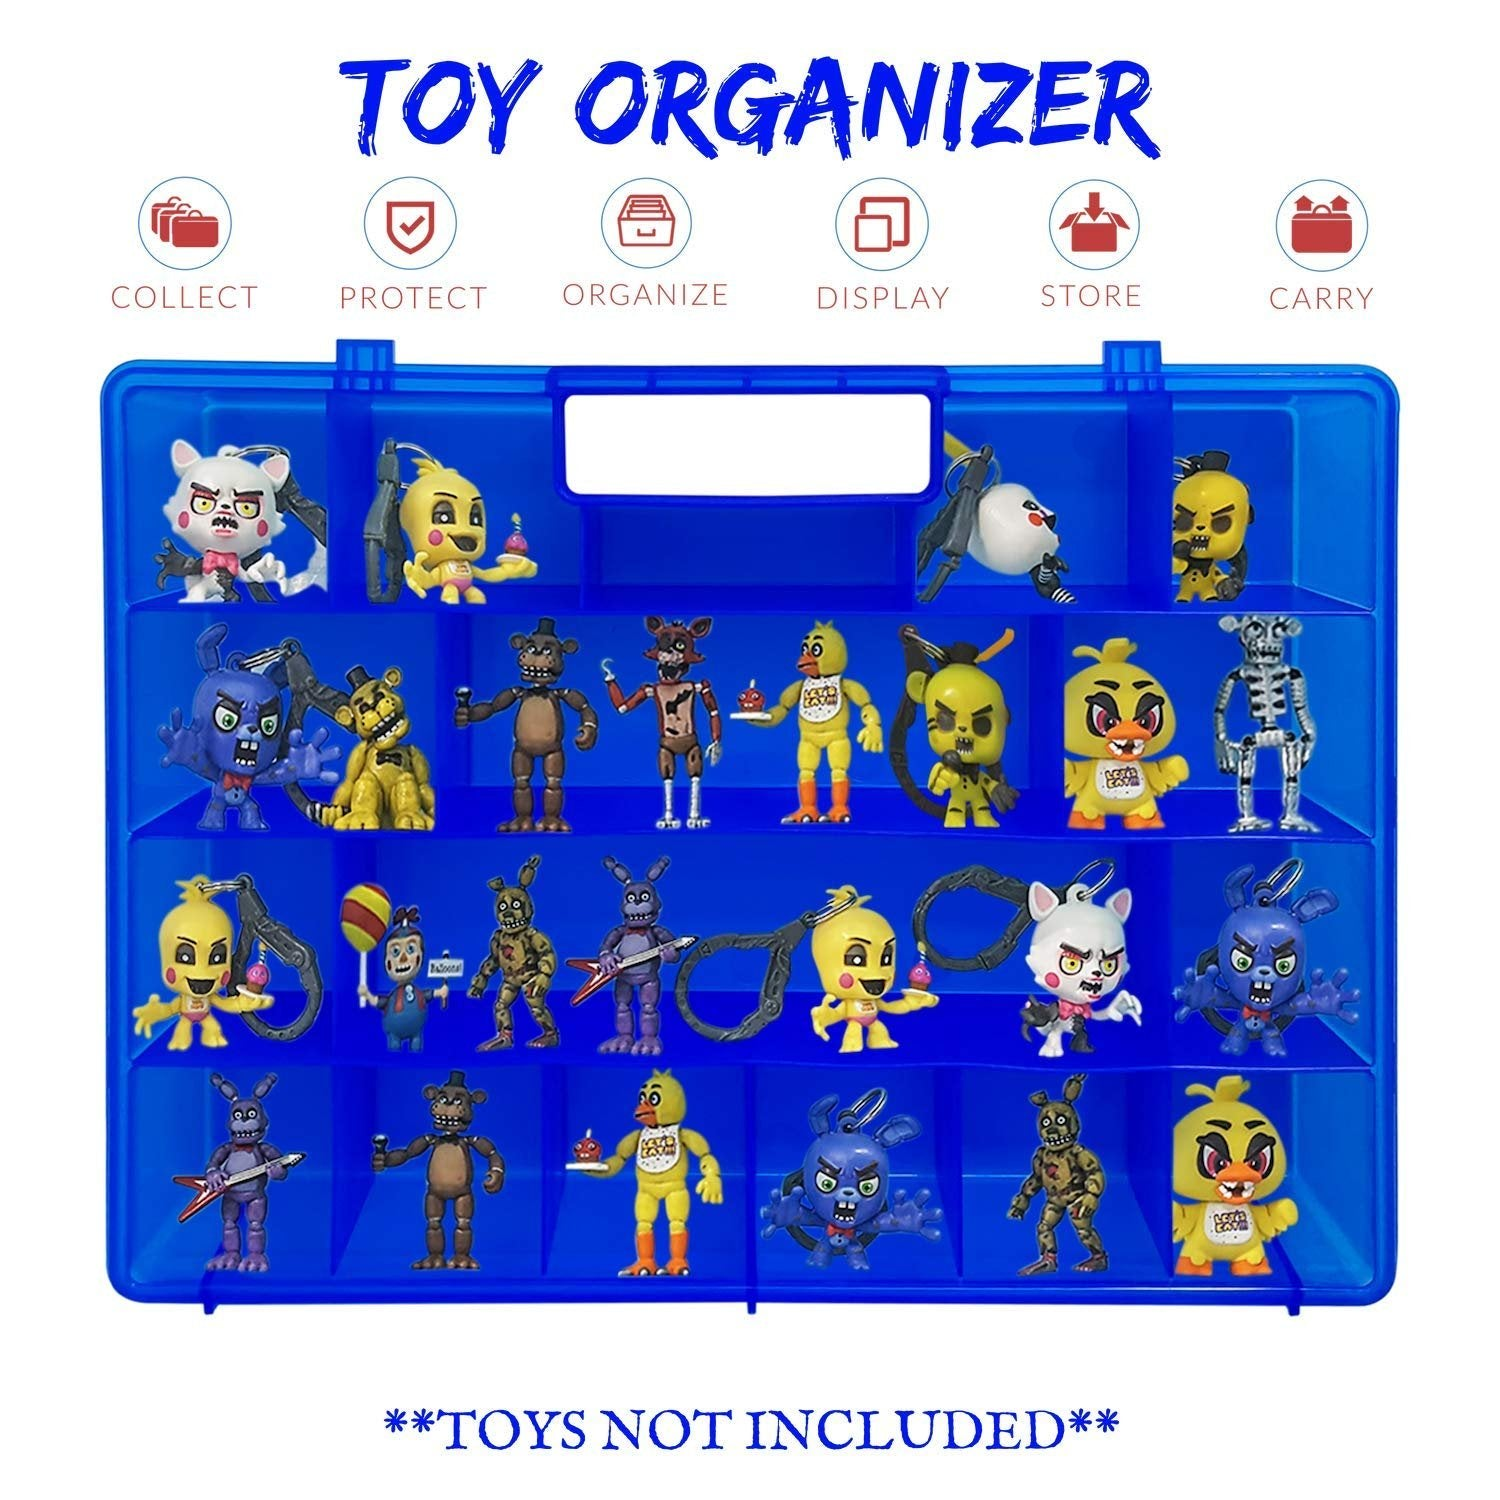 Life Made Better Favorite Action Figures Blue Case, Works with Five Nights at Freddy Figures, Solid Dependable, Light Box with Strong Built-in Handle, LMB Accessory & Organizer